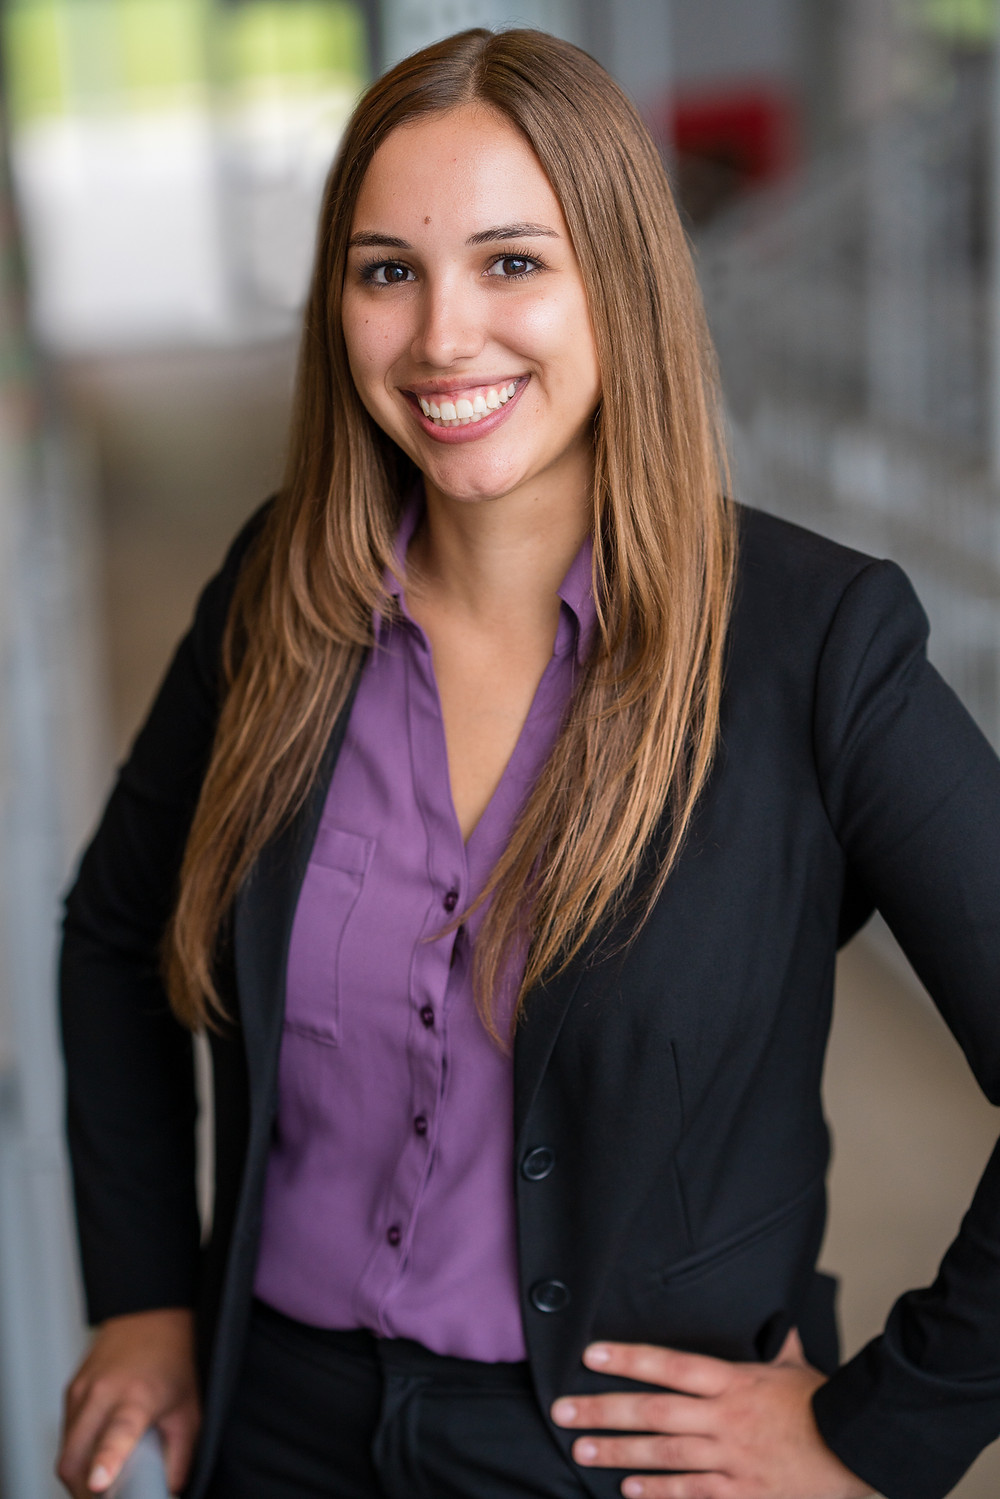 A business woman wearing a suit with a purple shirt smiling for a professional portrait